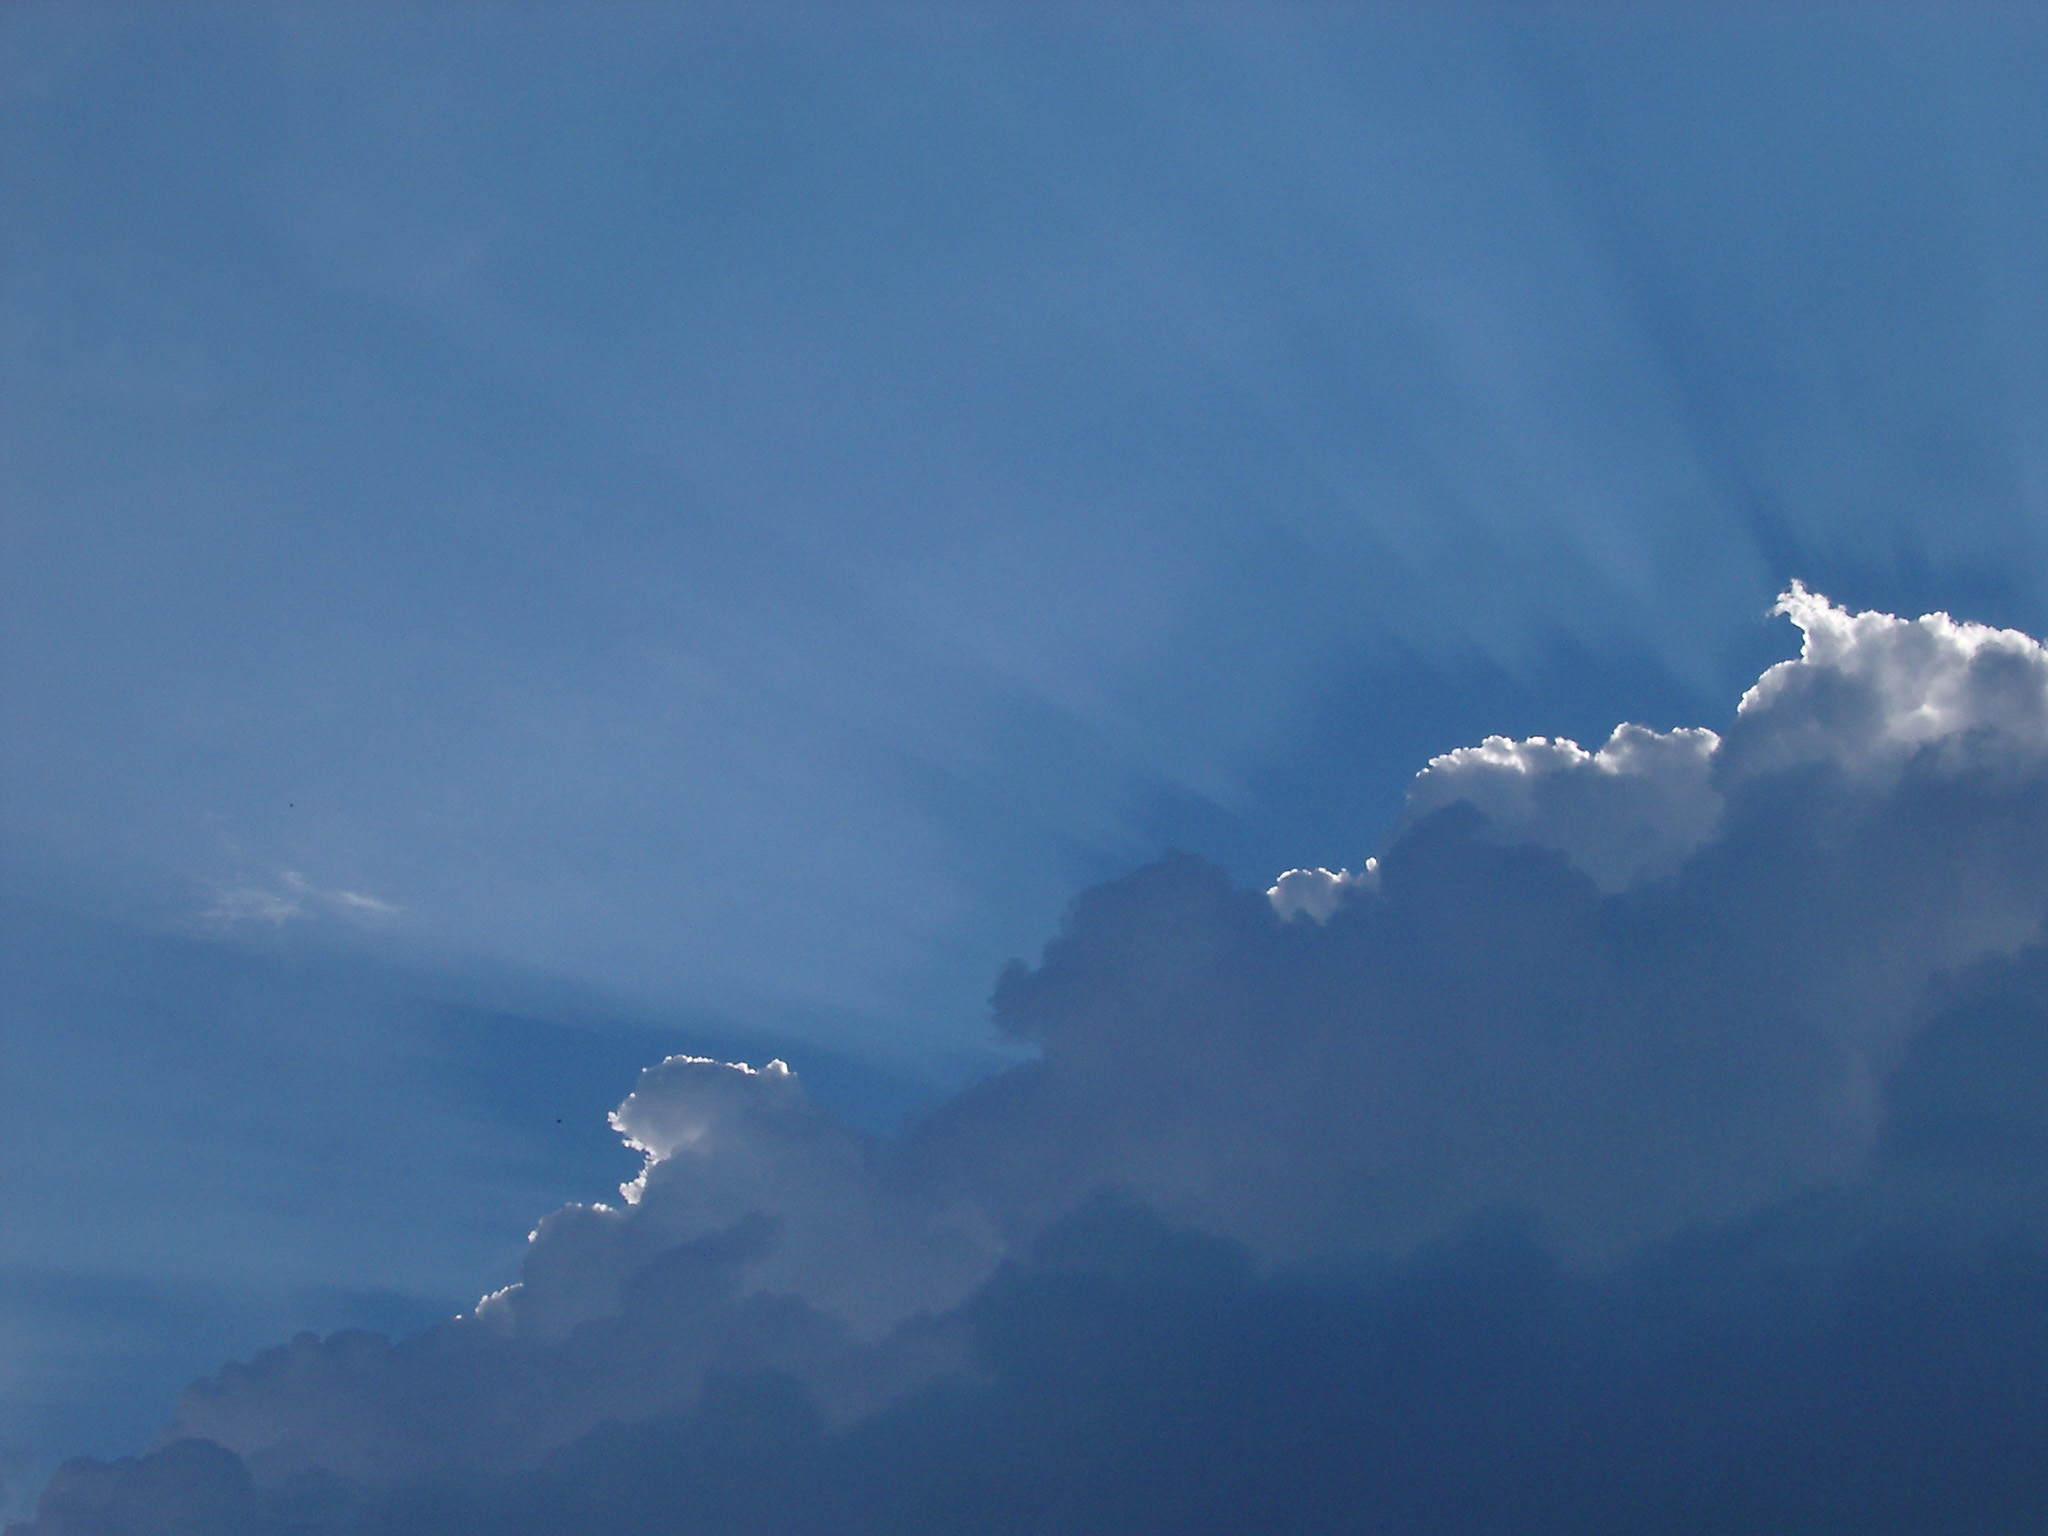 Backlit clouds in a blue sky with the suns rays just gilding the top of the formation in a nature and environmental background